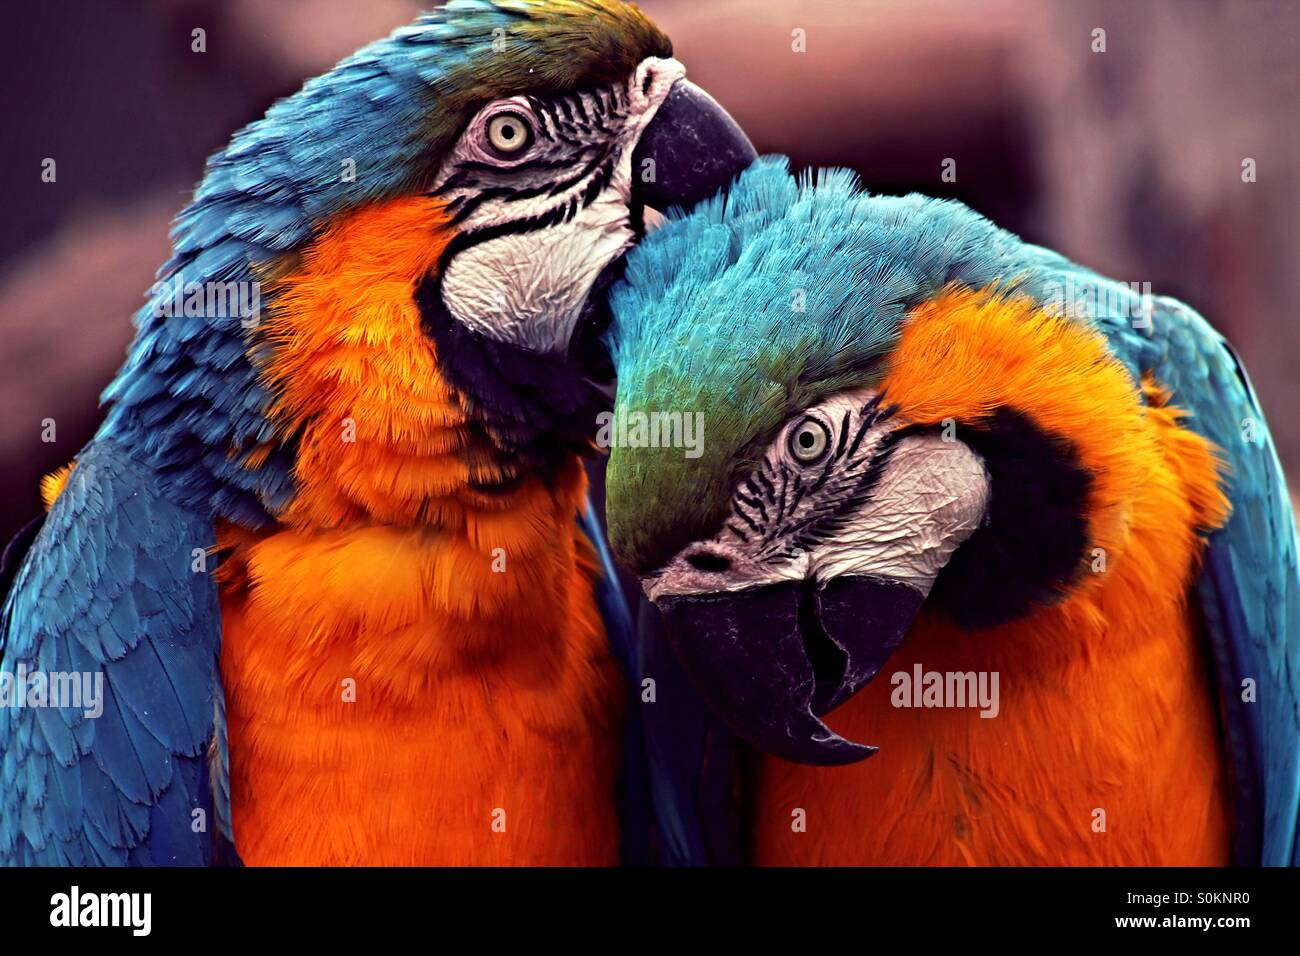 Parrot love - Stock Image